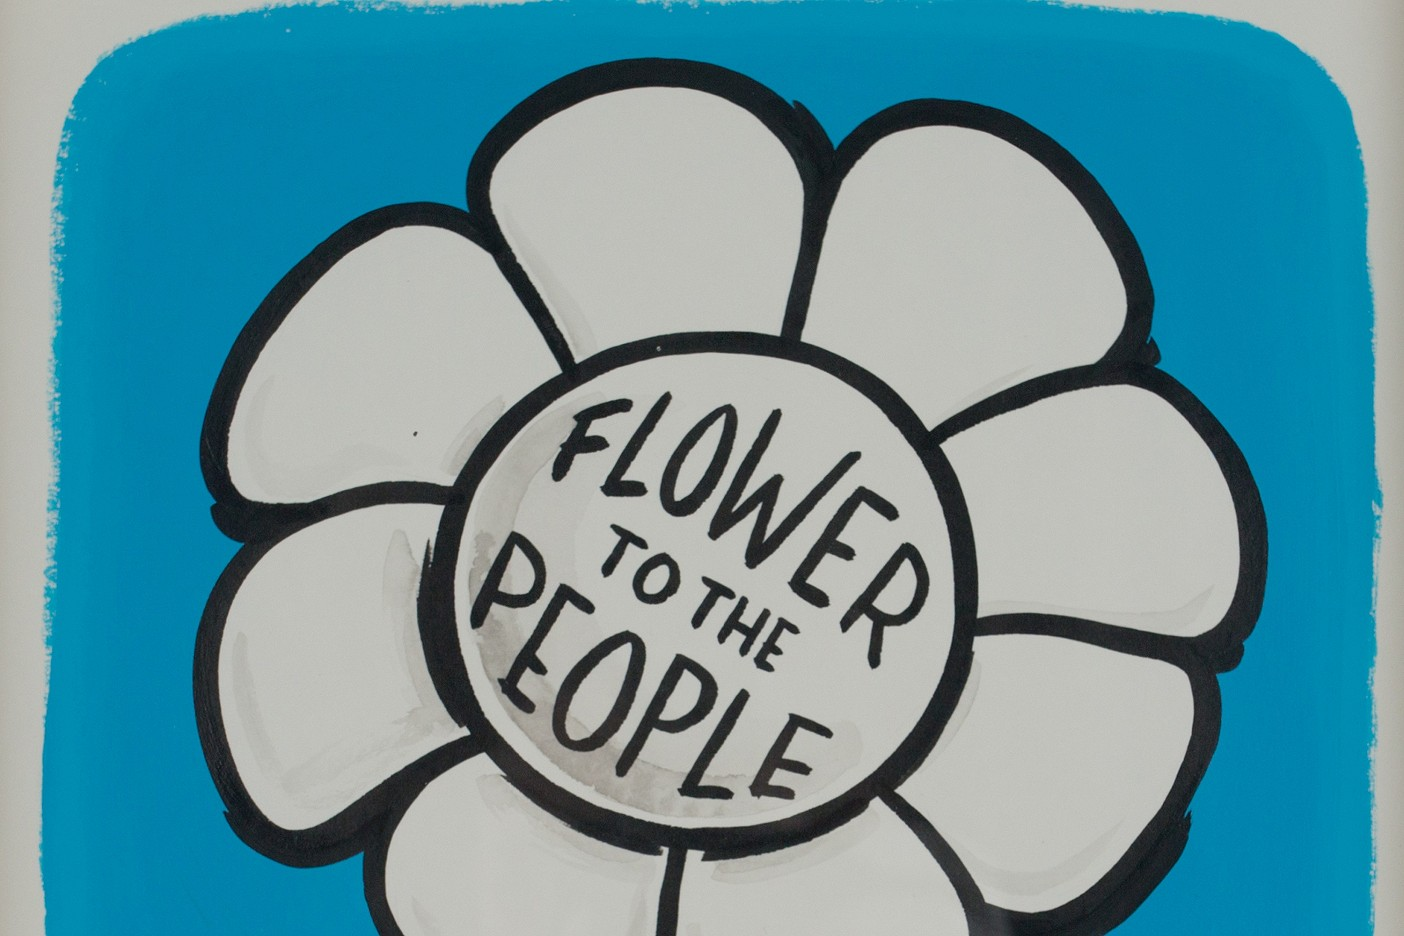 Flower to the people